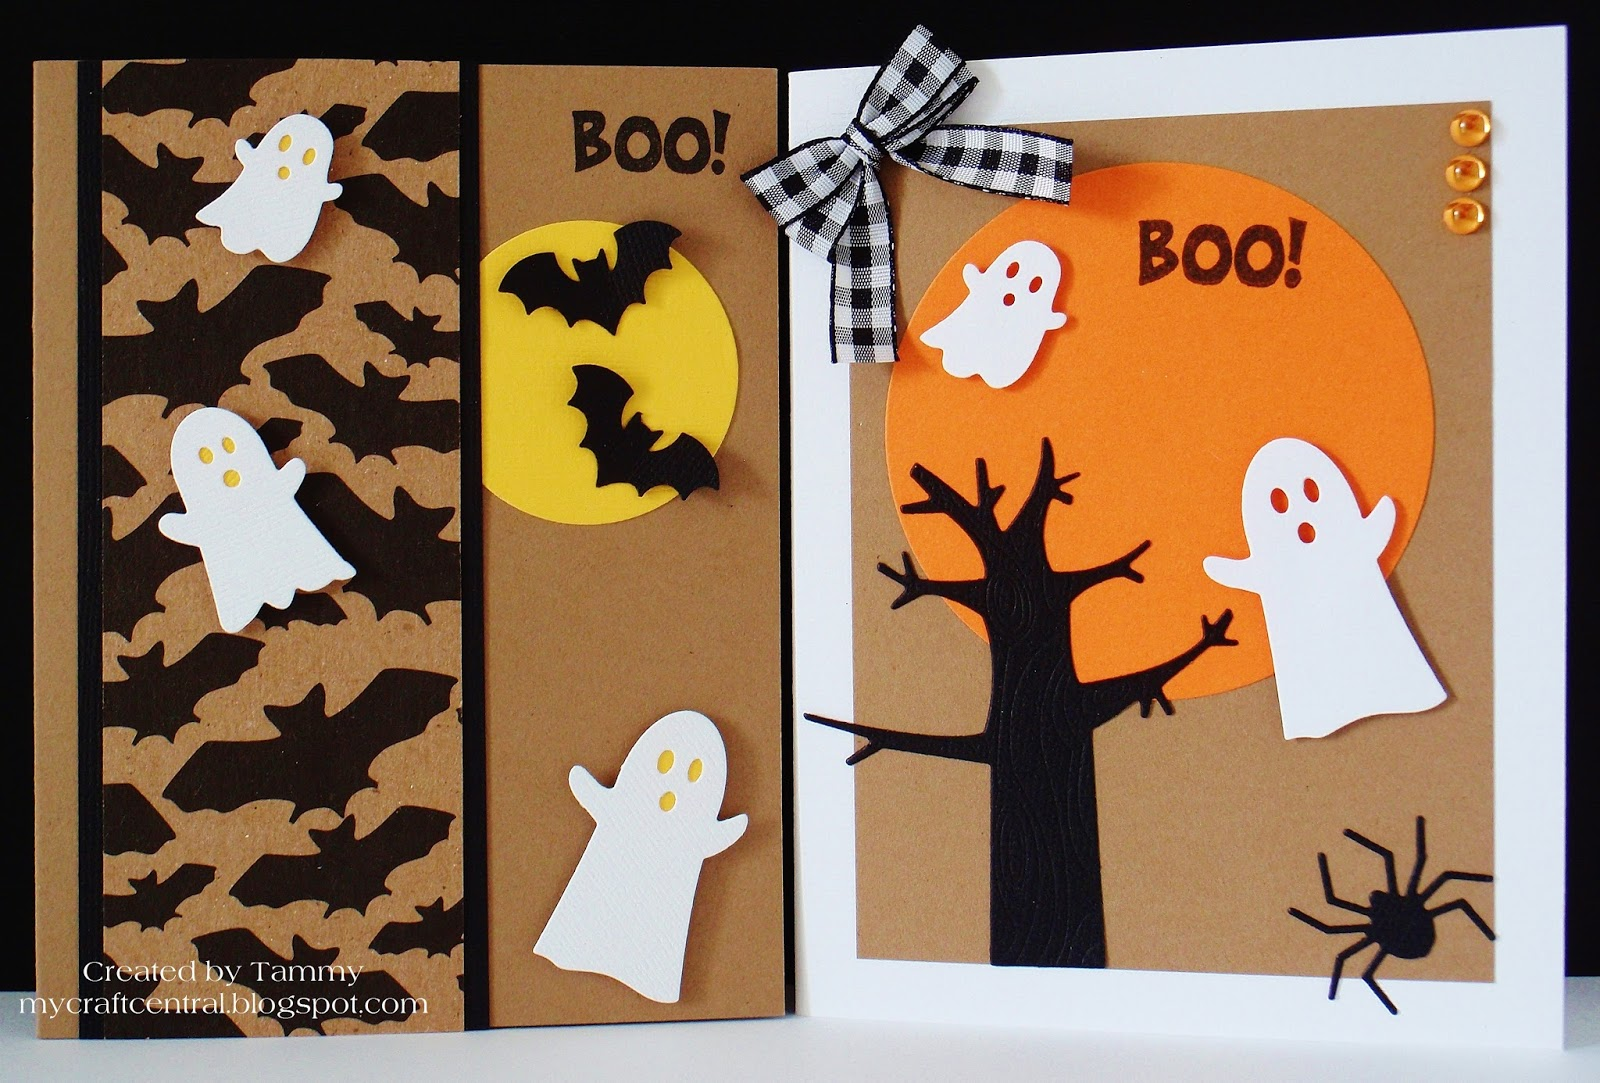 My Craft Central: Halloween cards for OWH